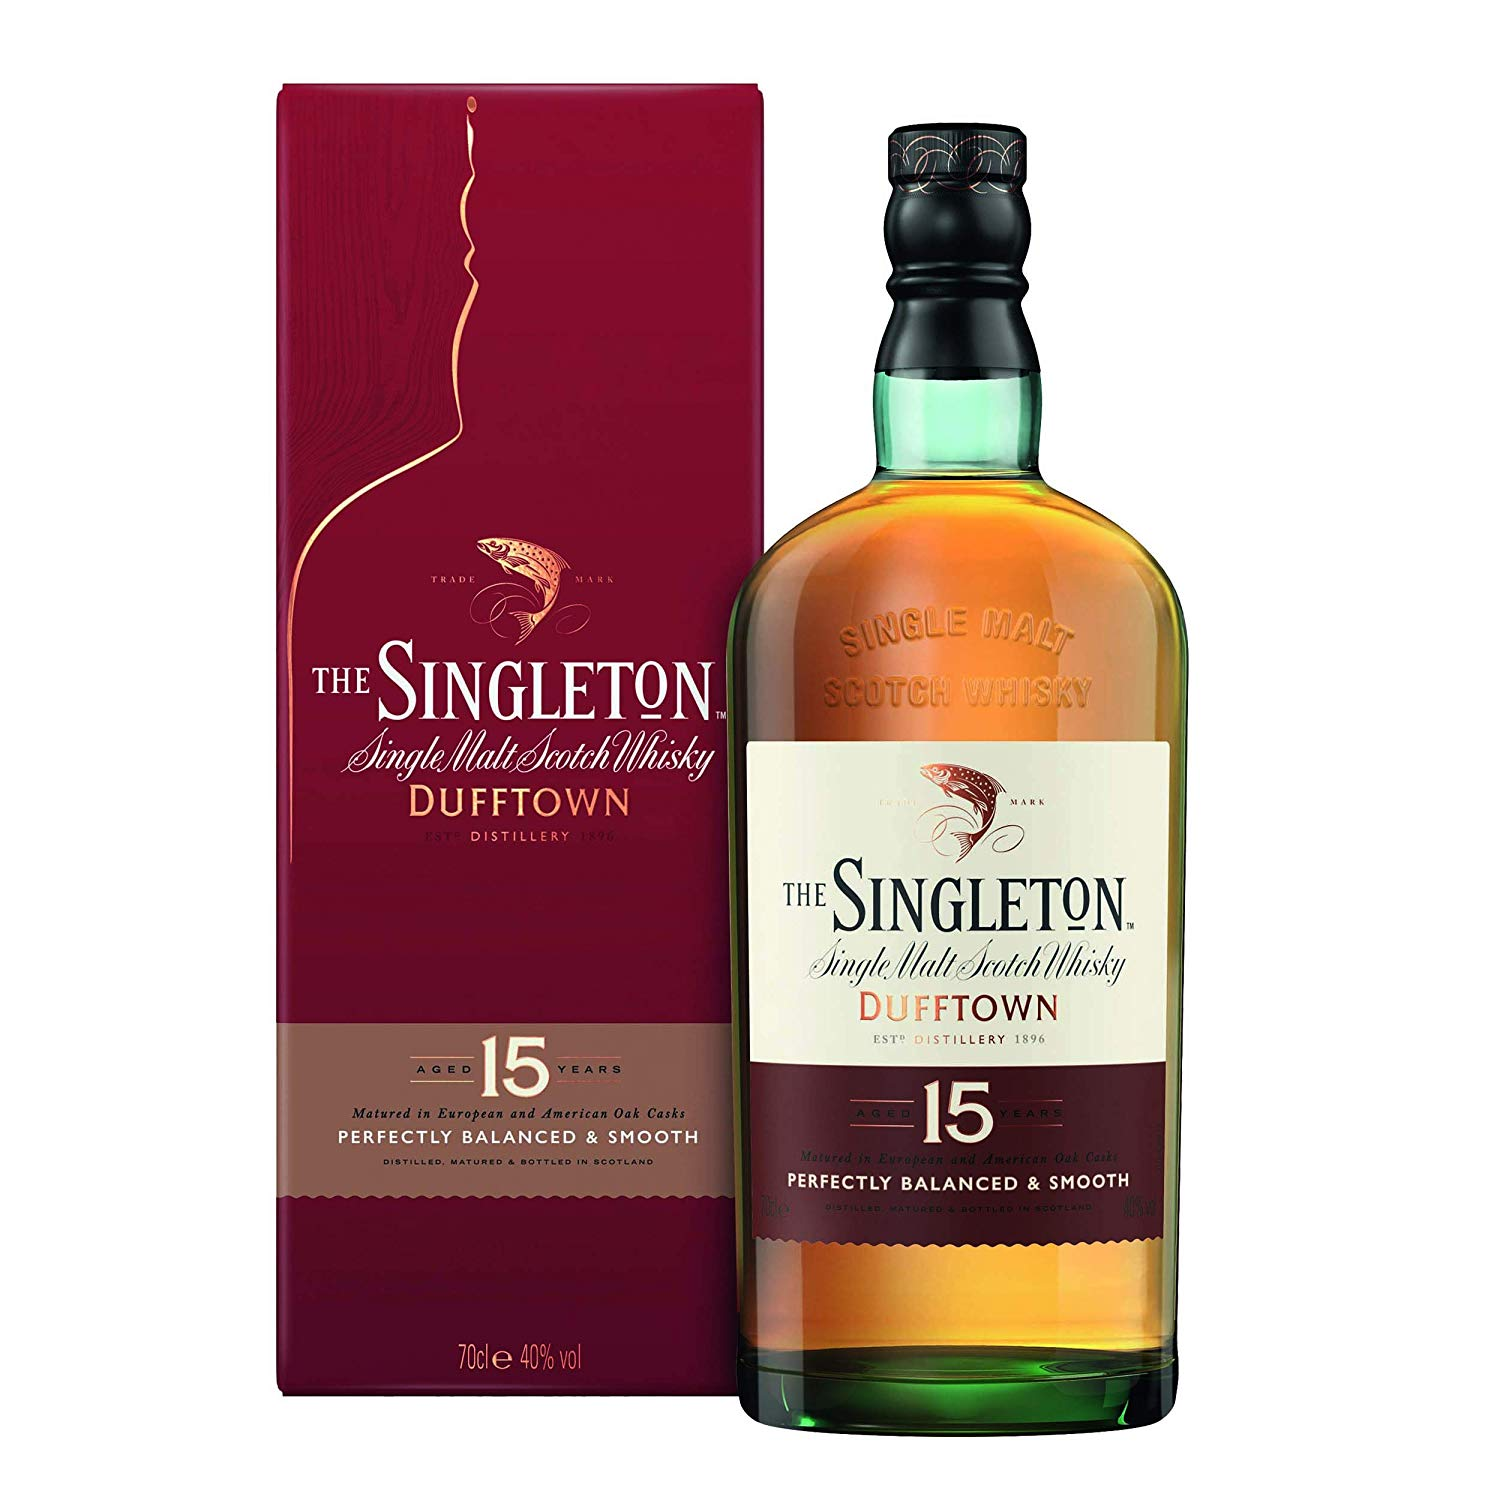 The Singleton single malt Scotch Whisky Dufftown 15